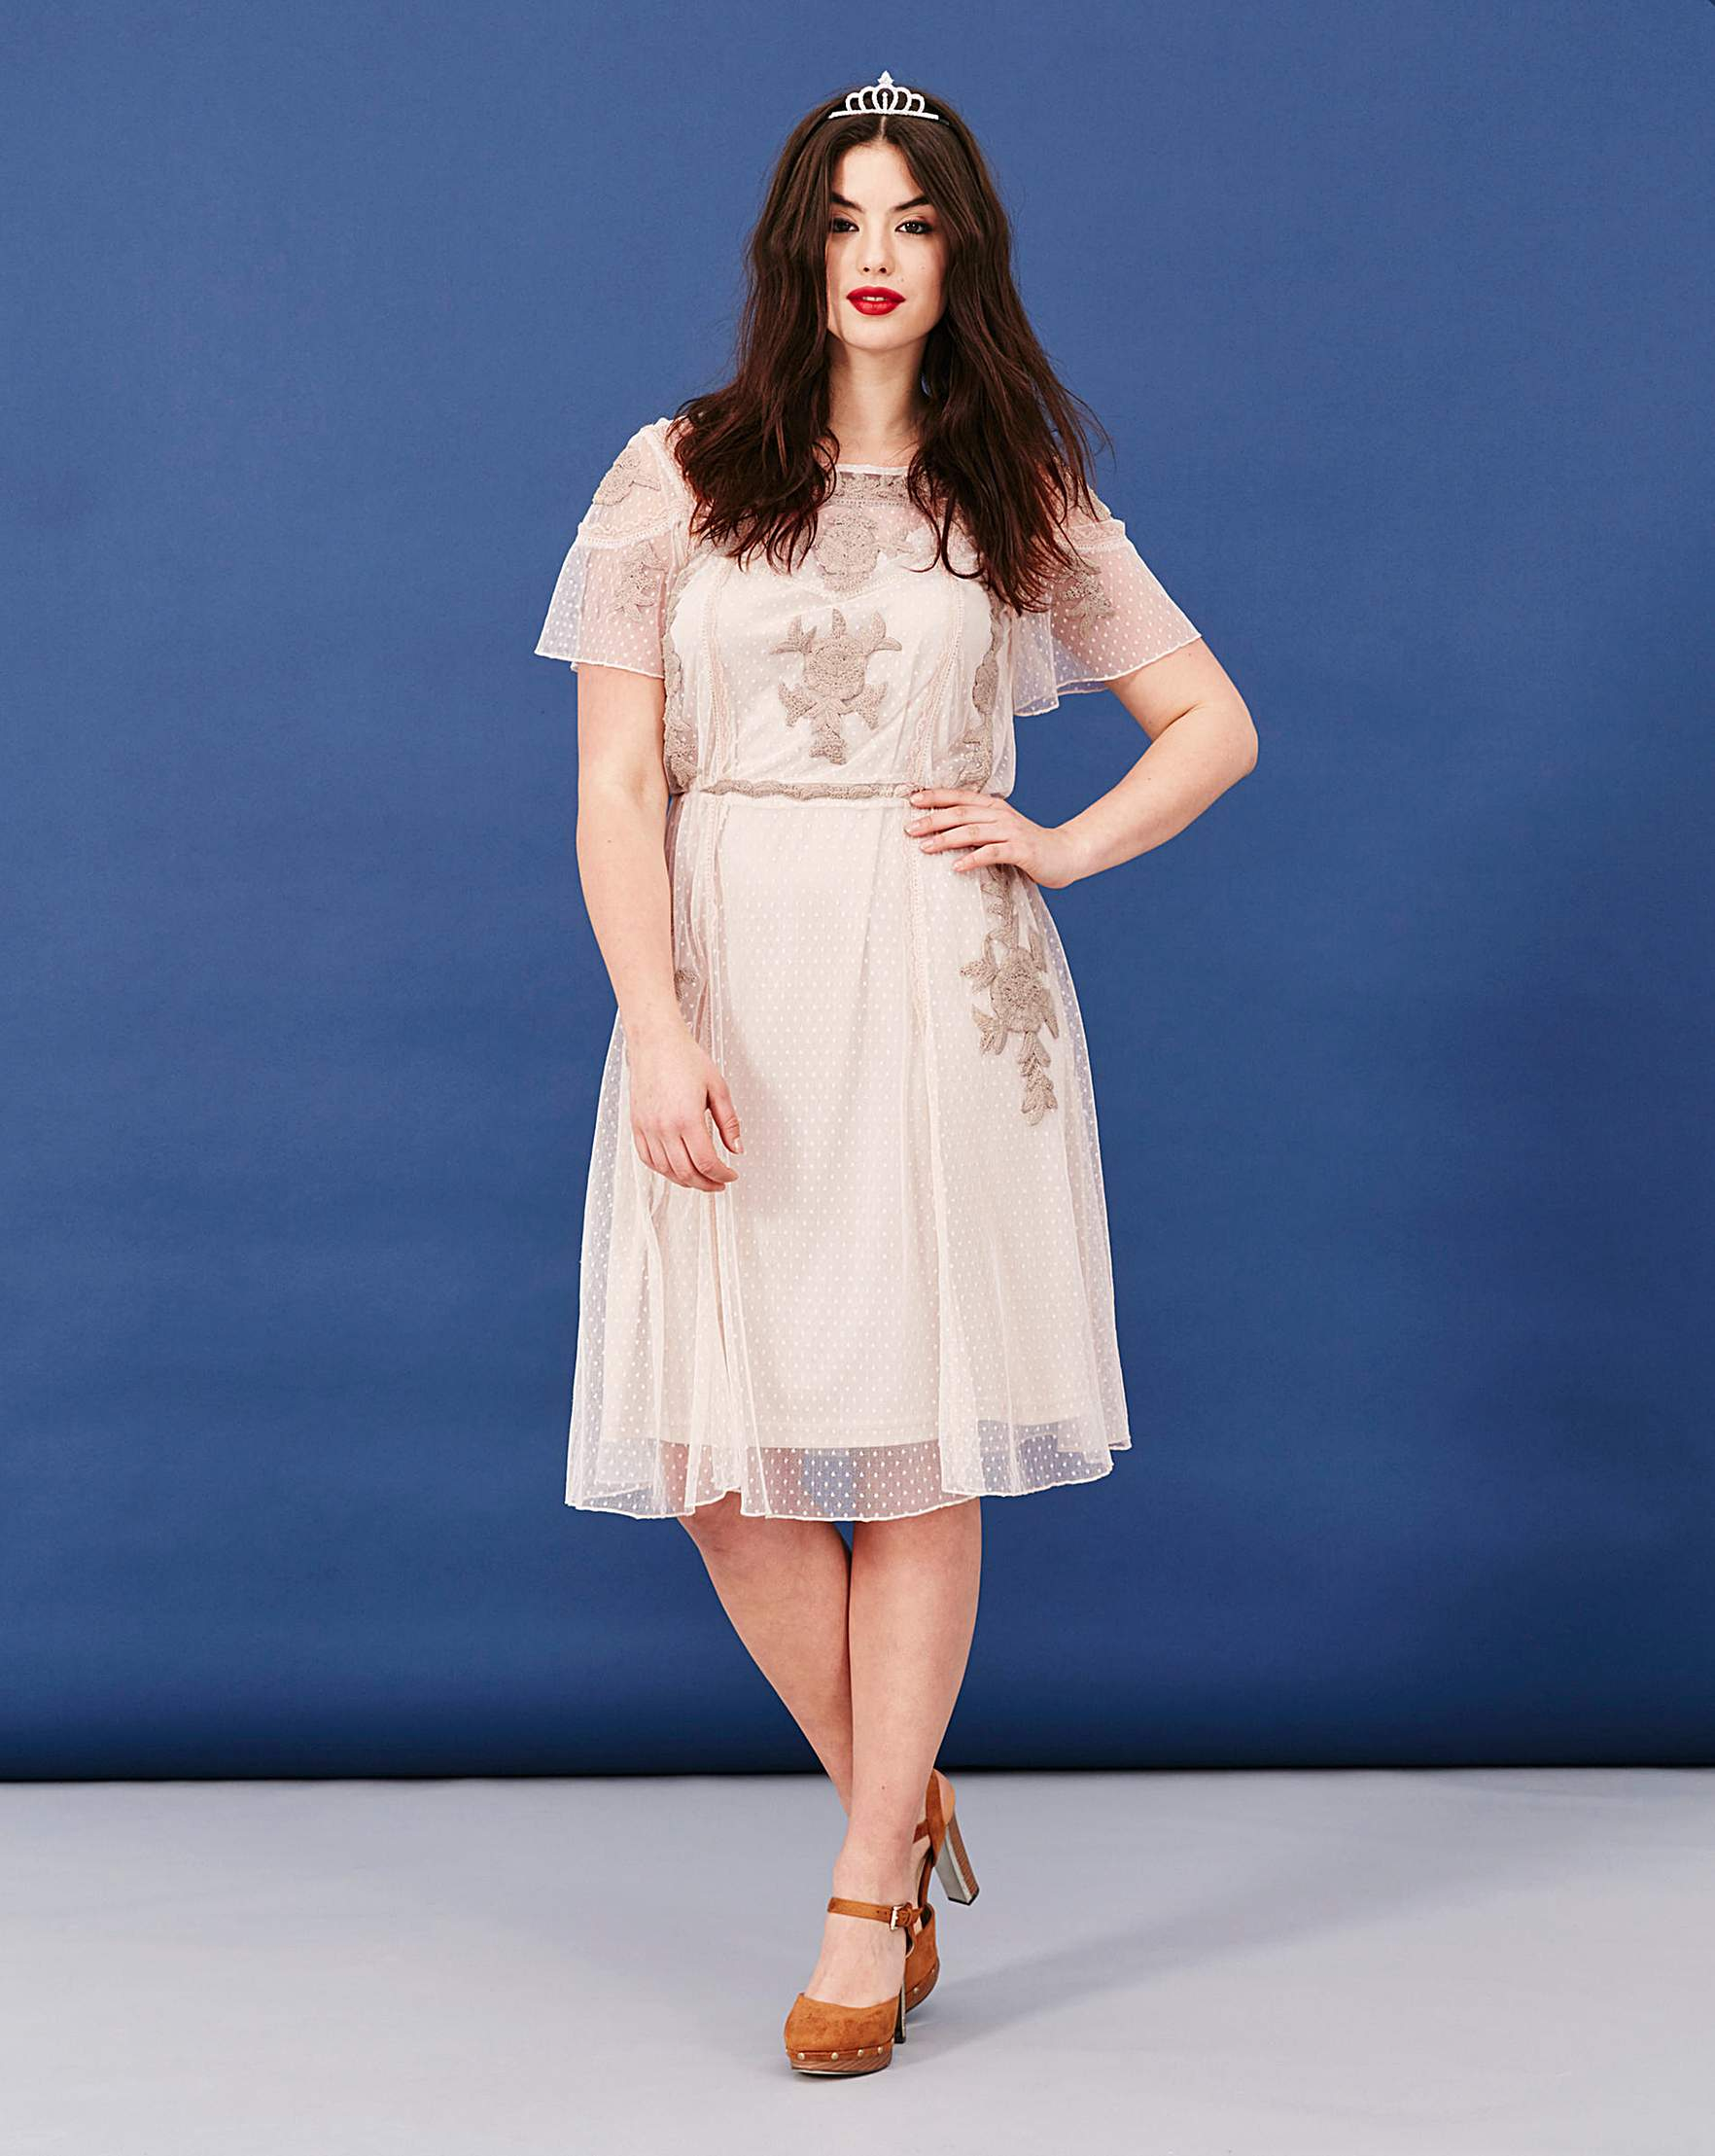 c785967fa640 Simply Be Short Sleeve Embroidered Dress | Simply Be